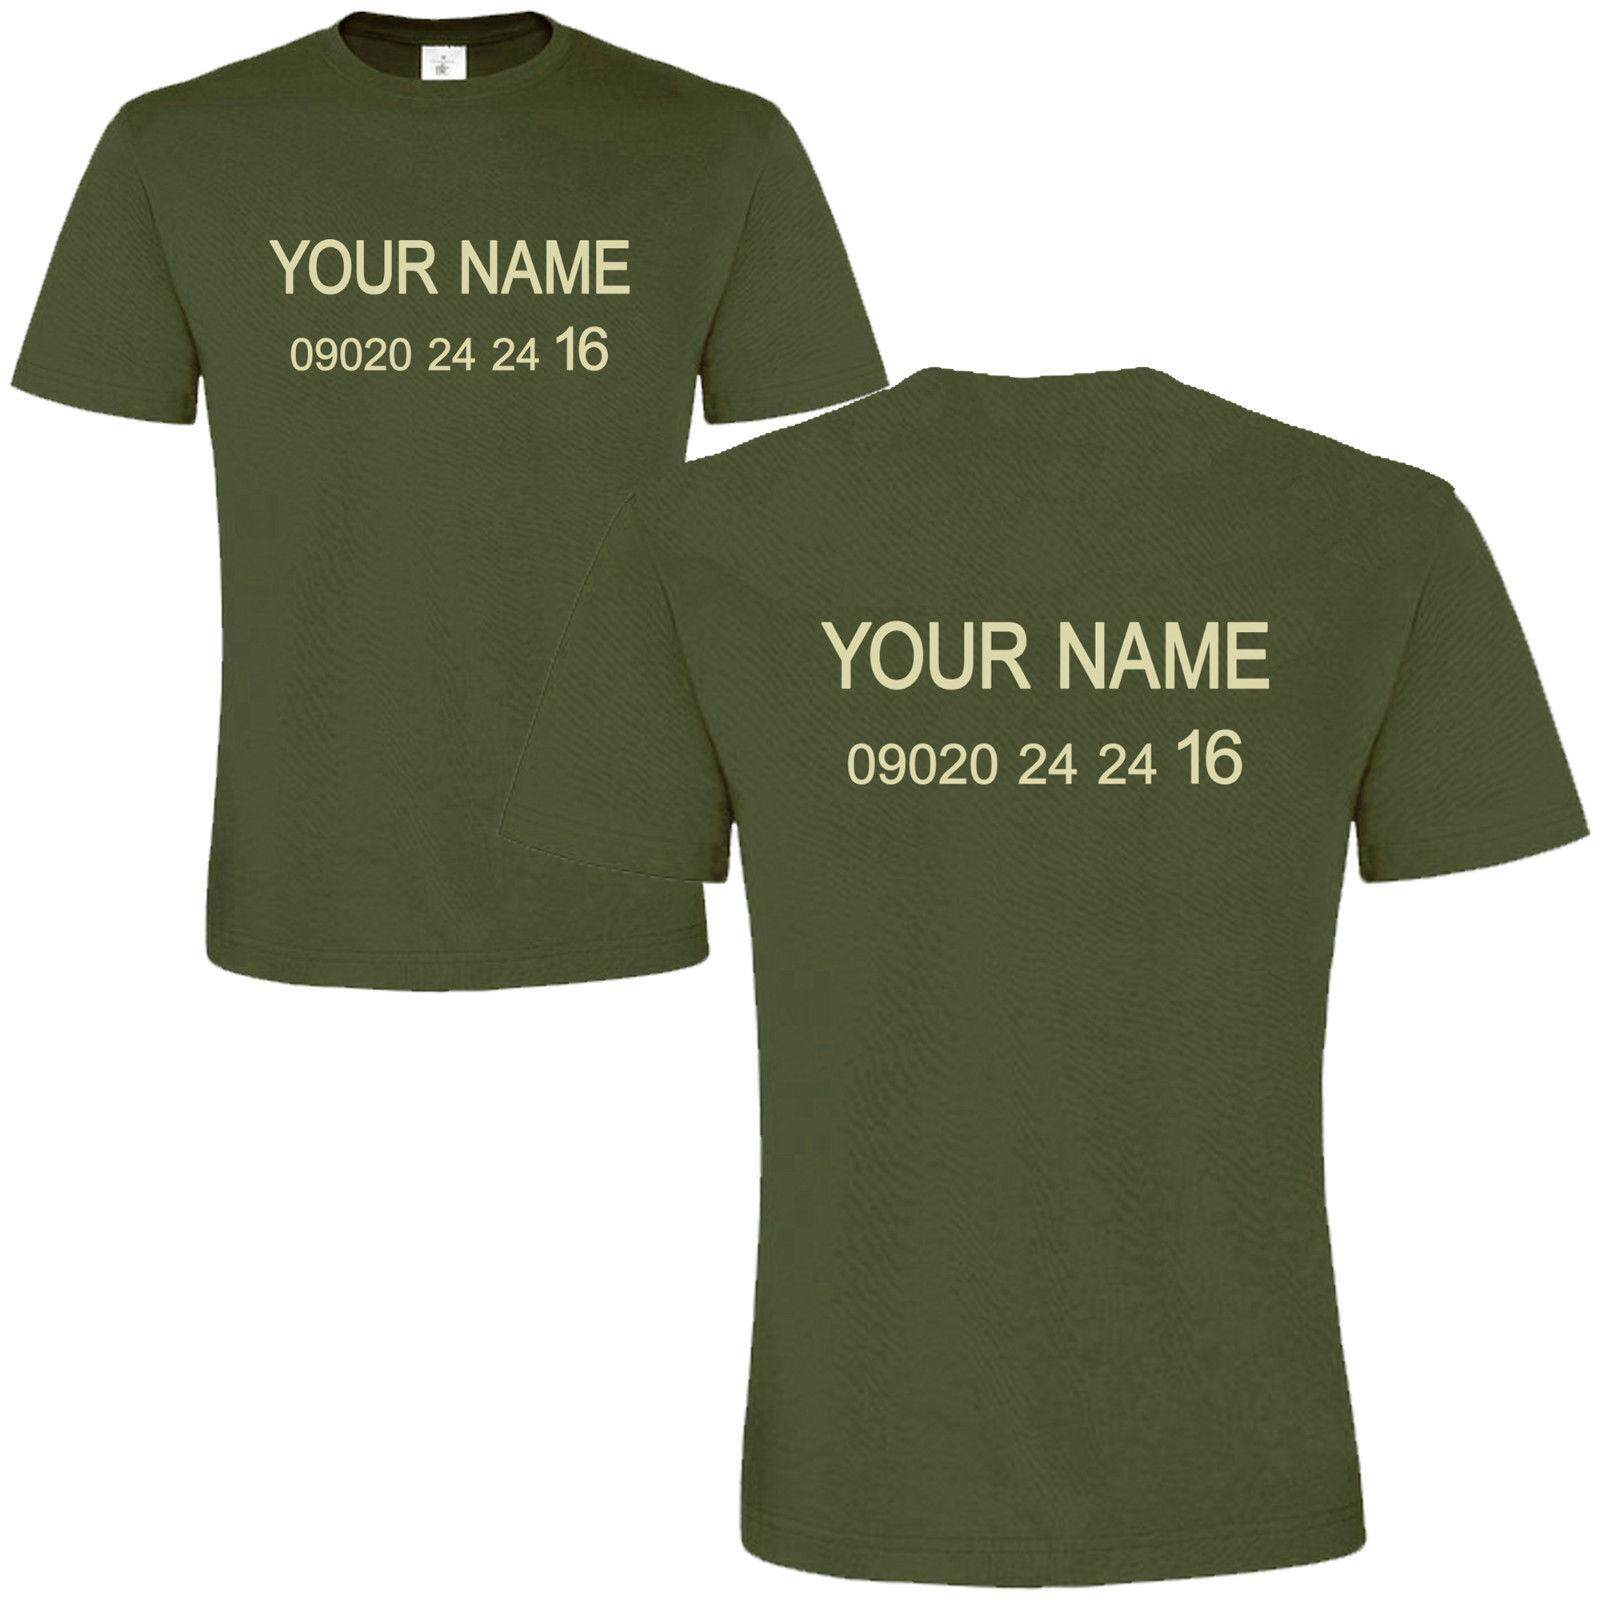 da4c2aa963f7ab I'M A Celebrity Custom T-Shirt - Celeb Jungle Fancy Dress Name Number